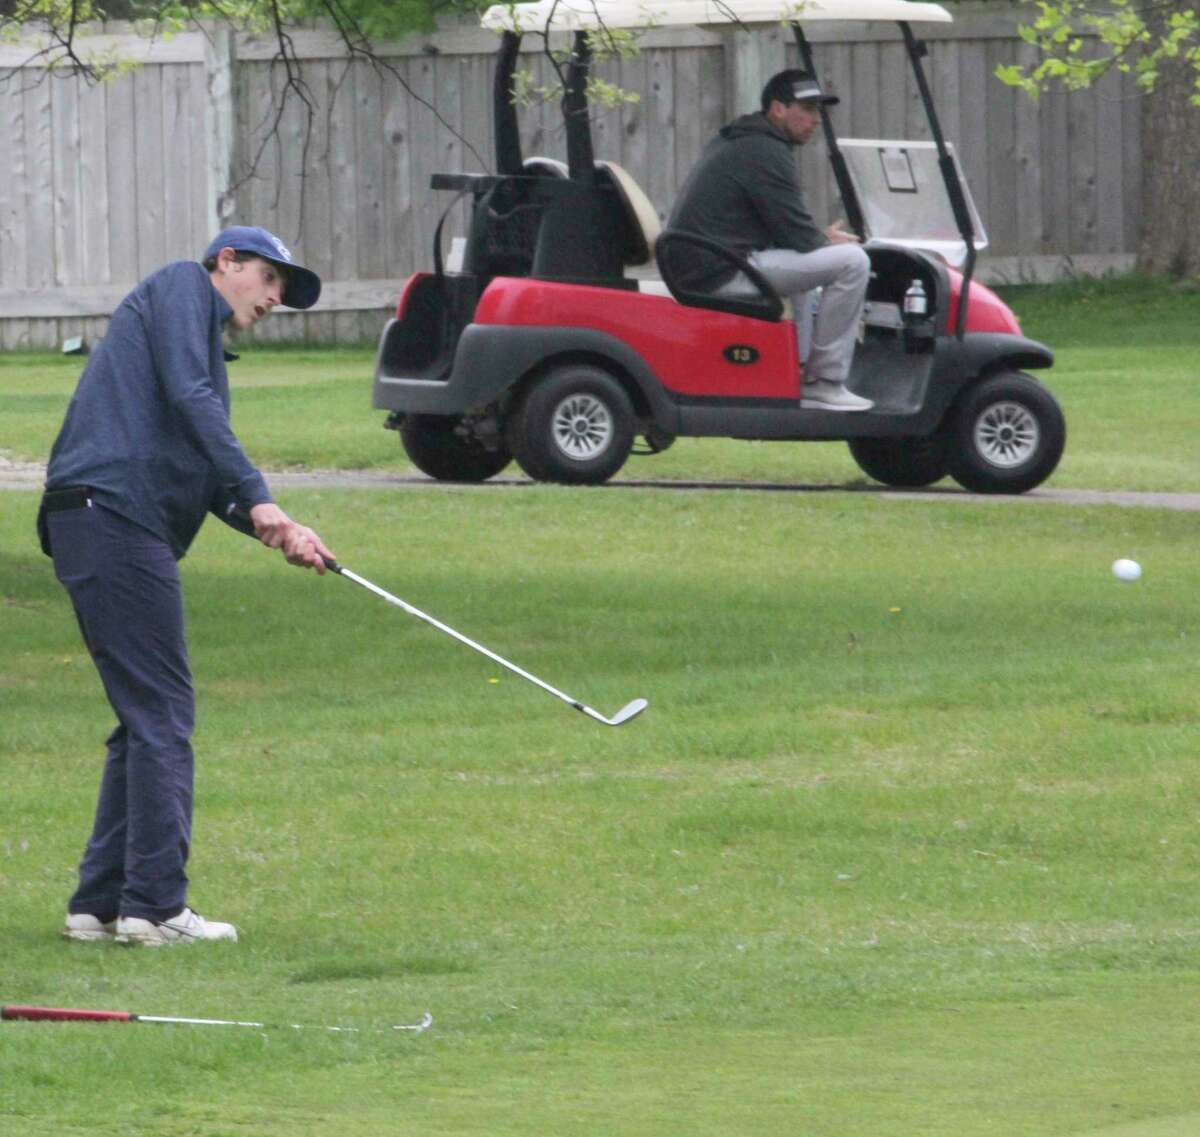 Brett Lilienthal, of Big Rapids, chips onto the green during a previous competition. (Pioneer file photo)